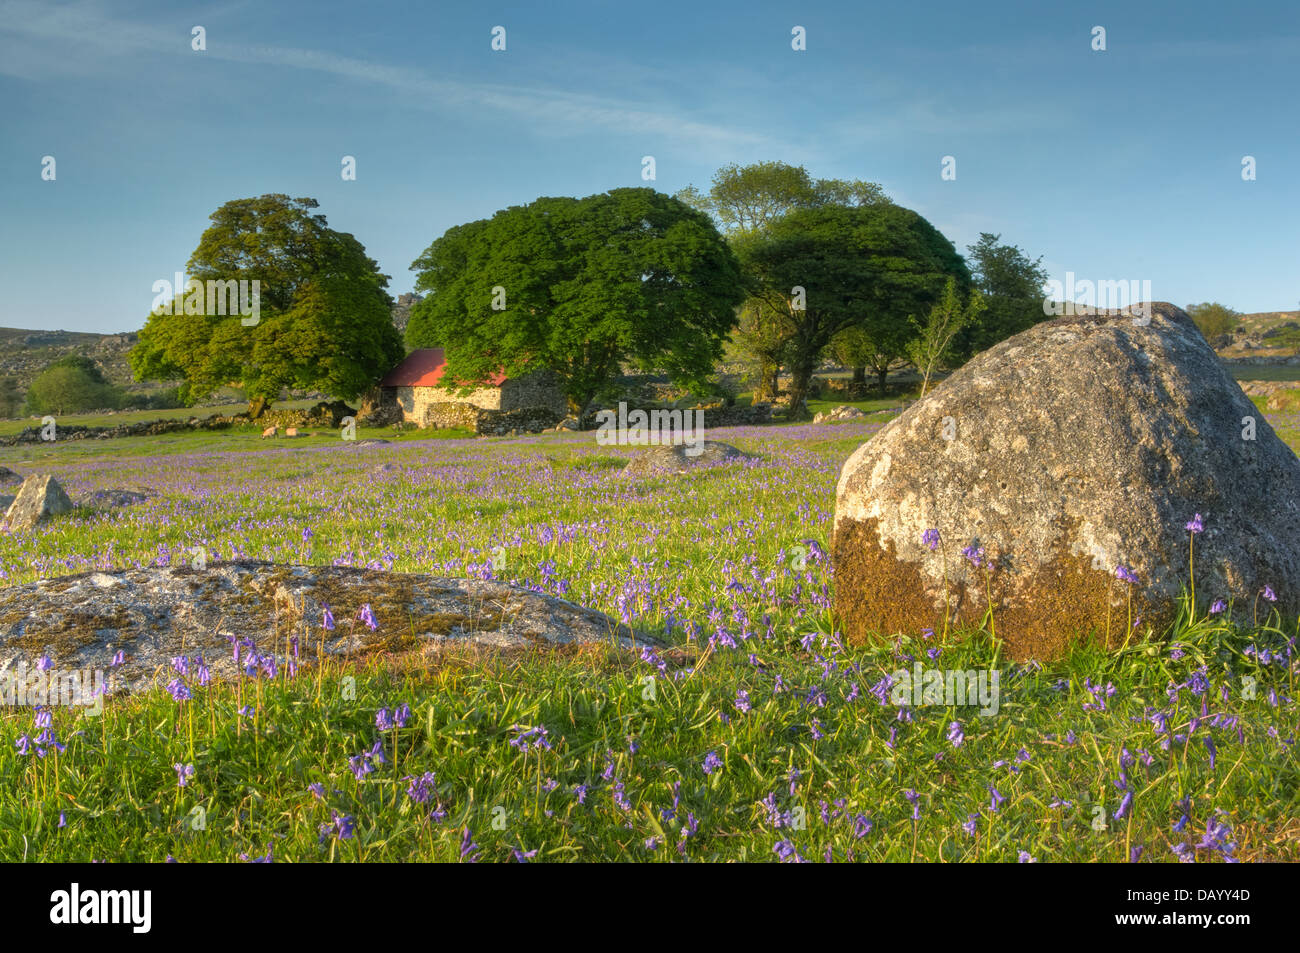 Late evening light falls upon the bluebells on Emsworthy's western lawn and the Oaks surrounding the much revered Stock Photo